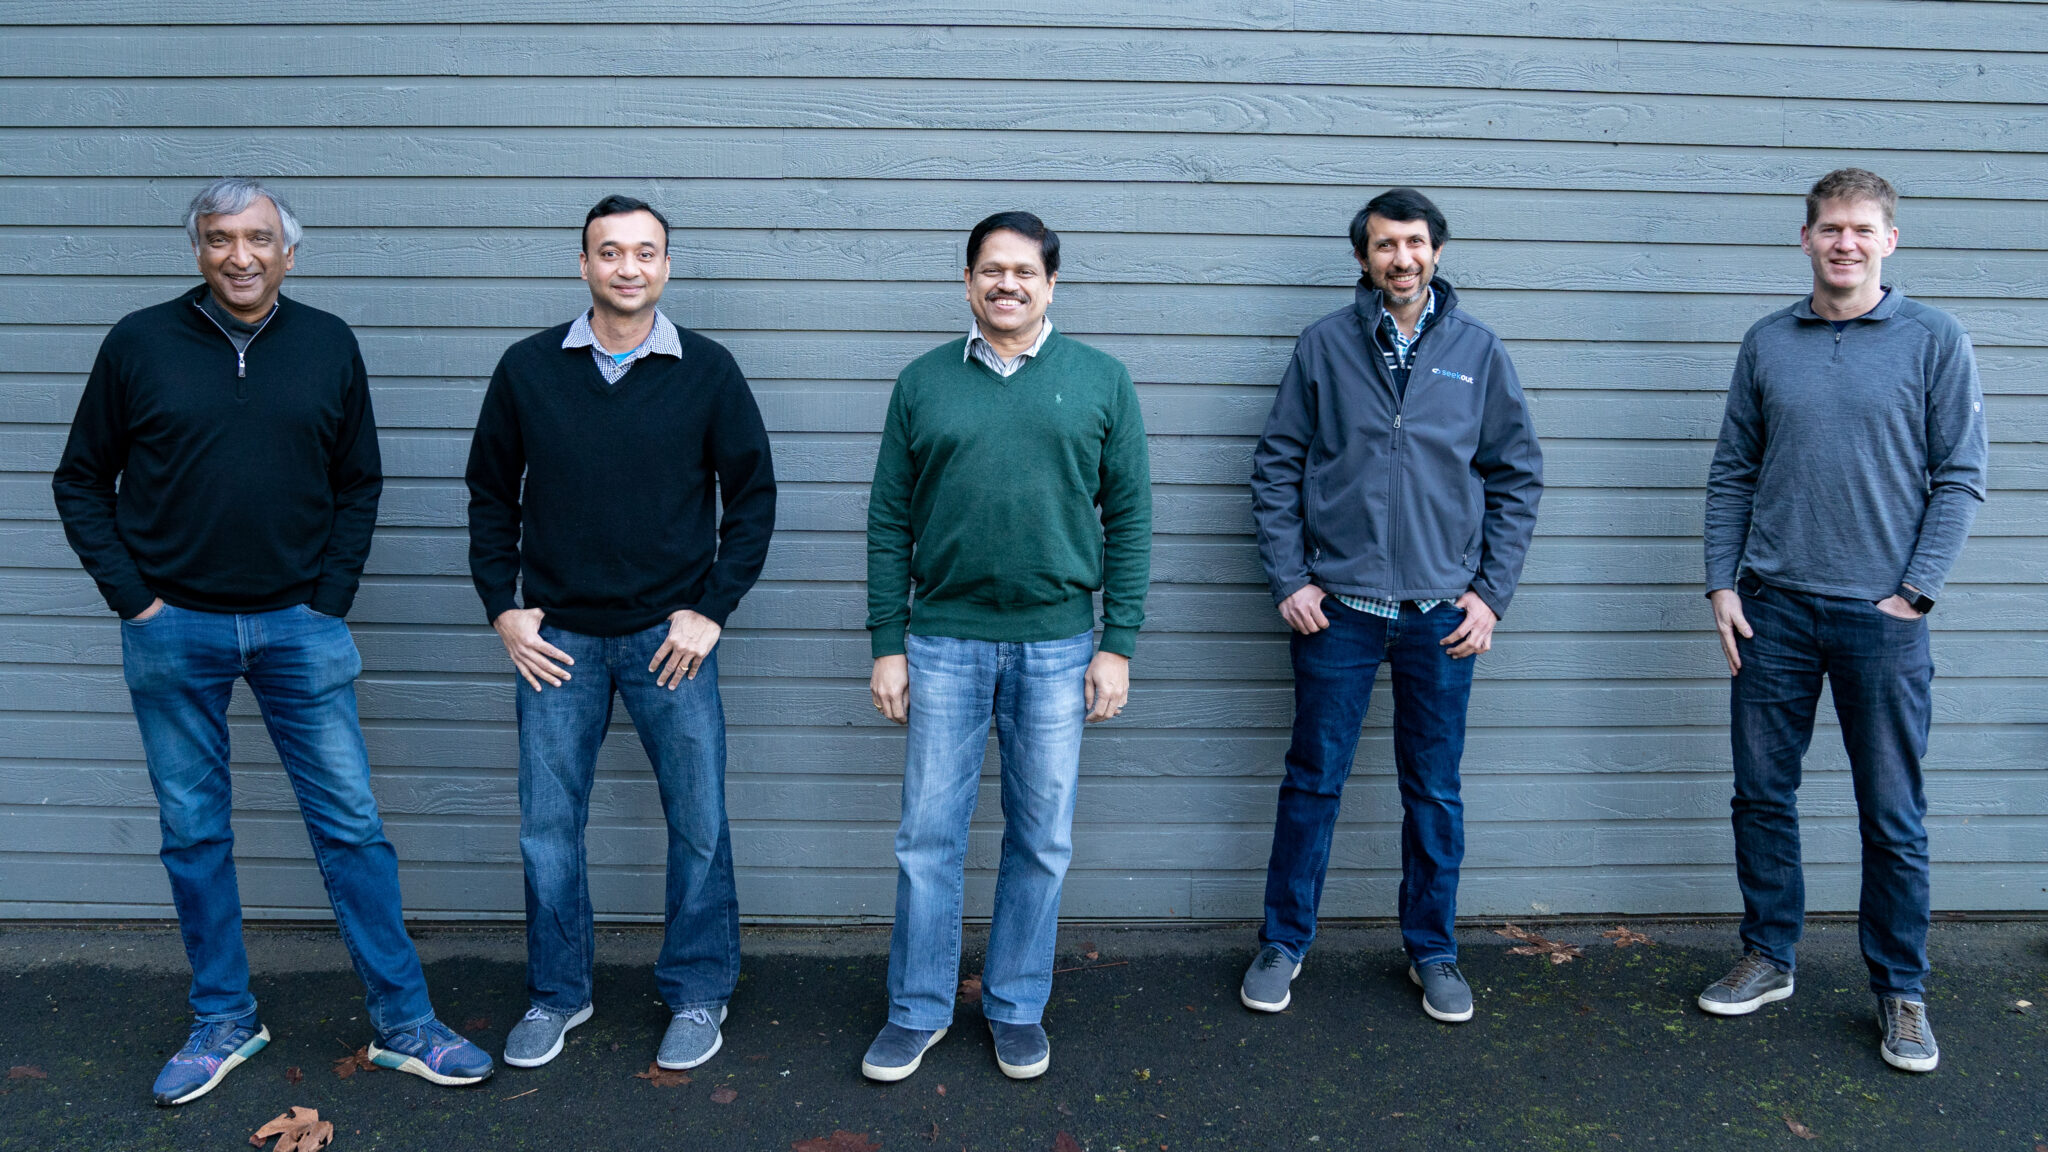 Recruiting startup SeekOut raises 65M to take on LinkedIn and other talent acquisition companies